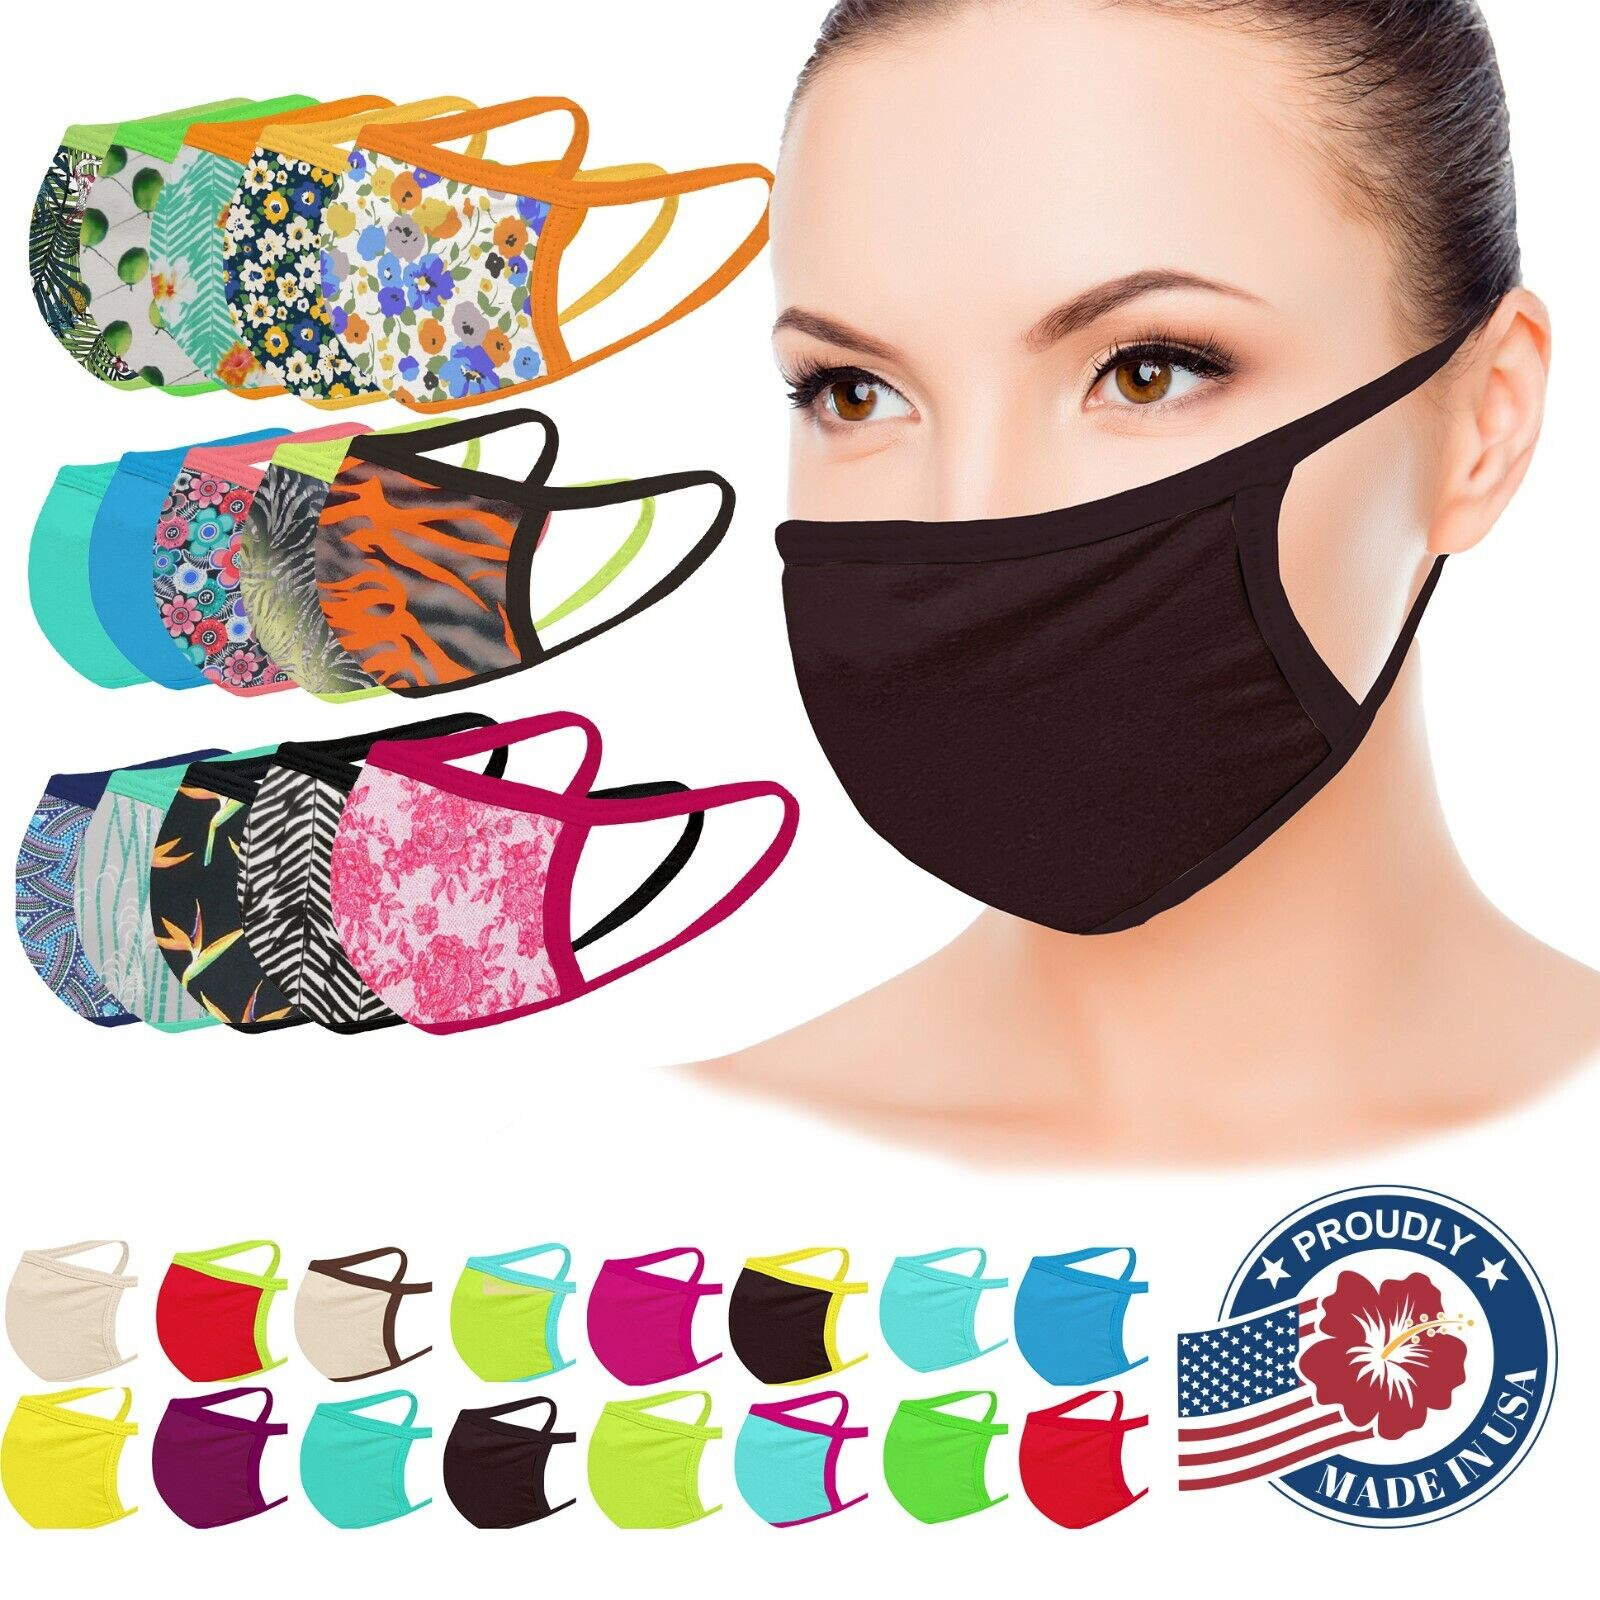 Face Mask Washable Facemask Mouthmask DRY QUICKLY Pocket for Filter MADE IN USA Accessories